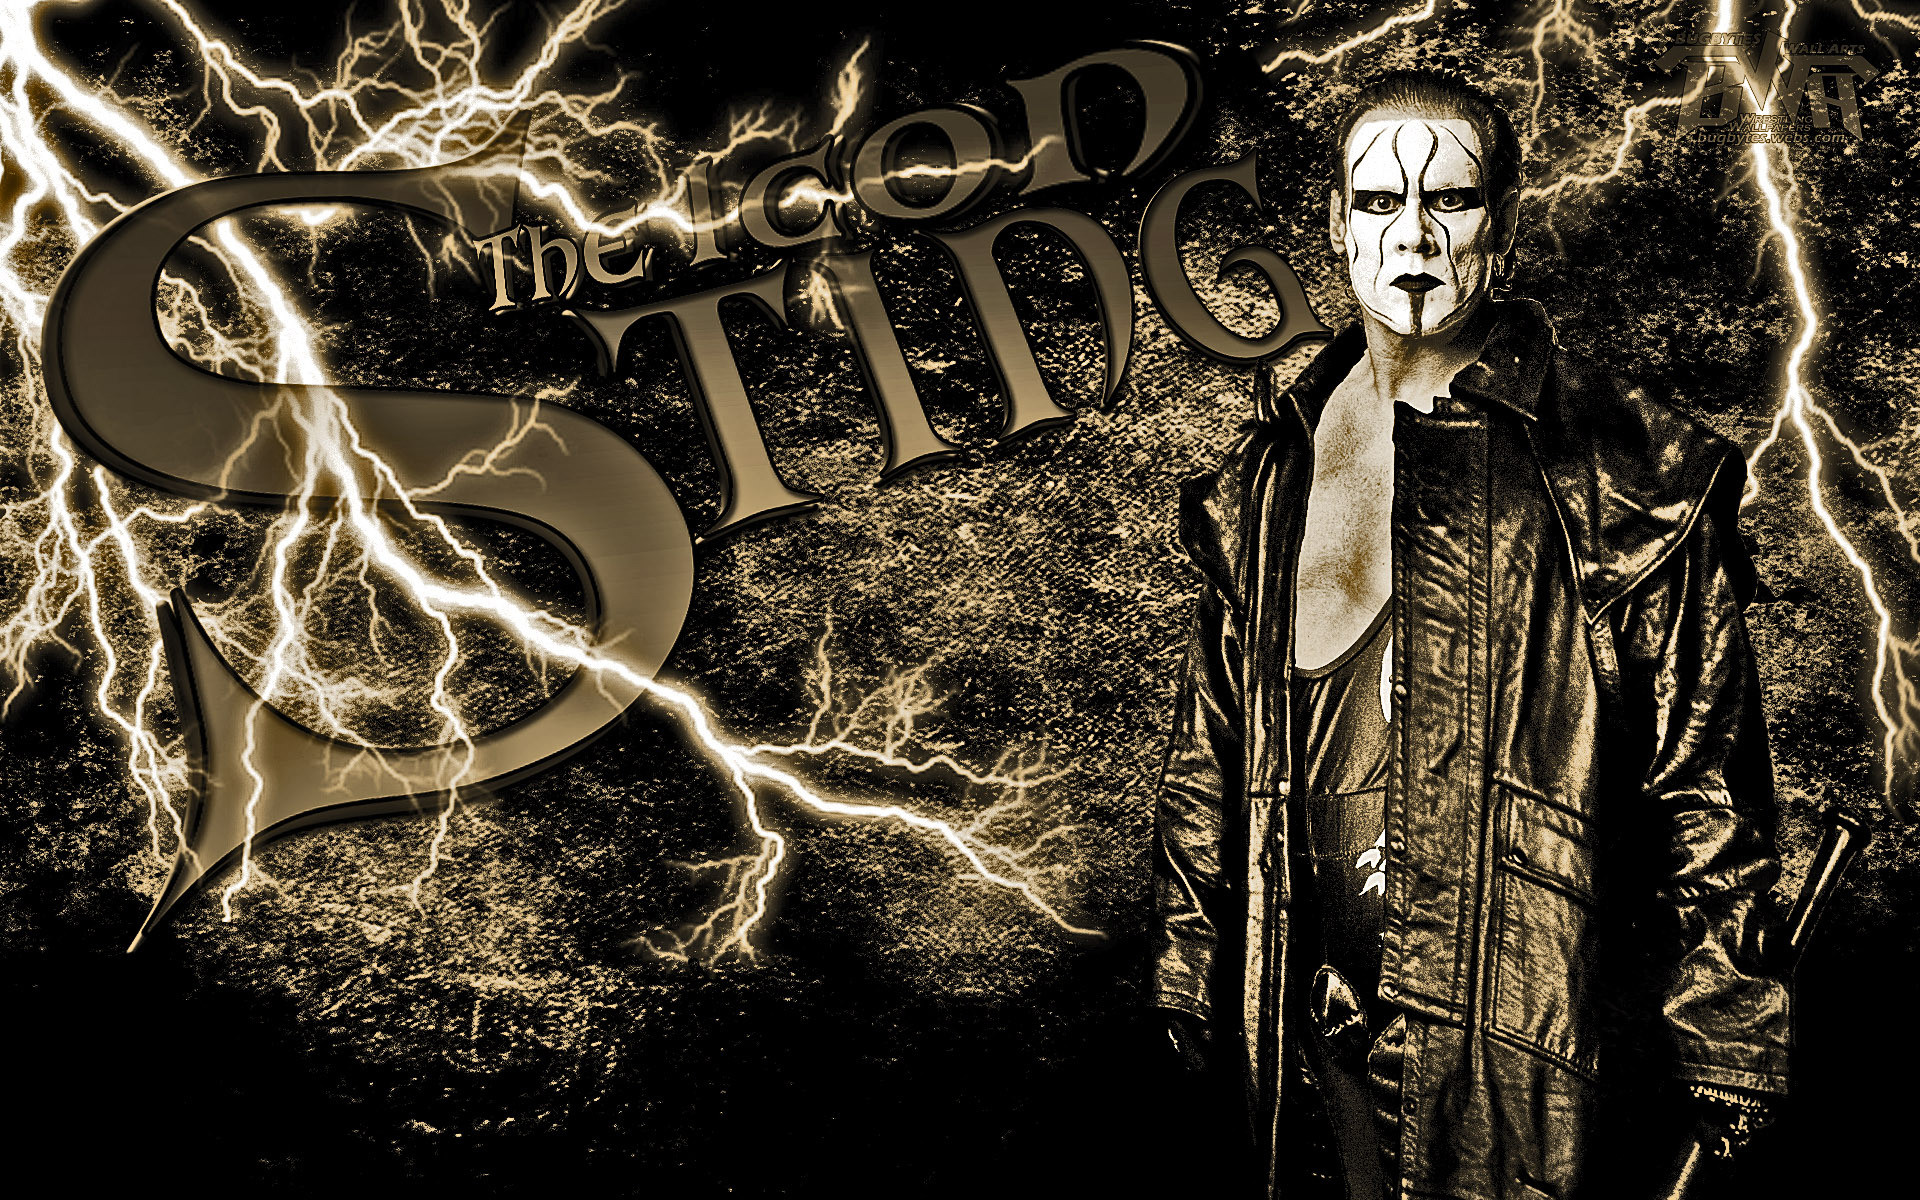 1920x1200 Wcw Sting wallpaper 949084